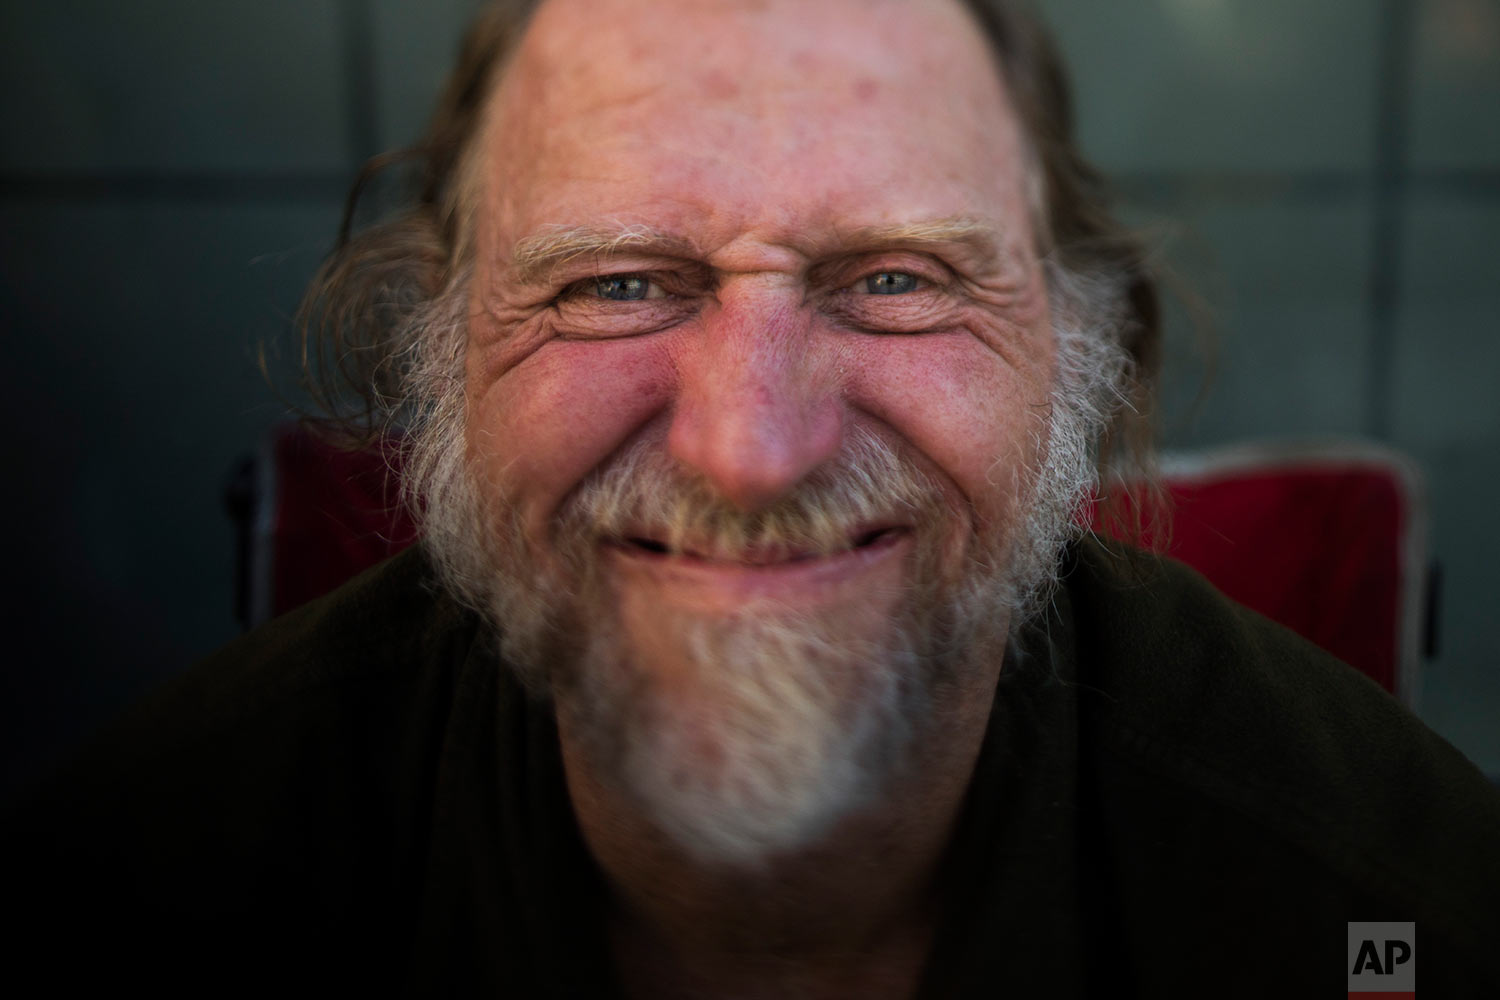 Barry Warren, 52, pauses for photos Wednesday, Sept. 27, 2017, in Seattle. Warren has been homeless his entire adult life. After about 20 years without a home in California, he moved to Seattle, where the benefits are better and life on the street is safer. (AP Photo/Jae C. Hong)